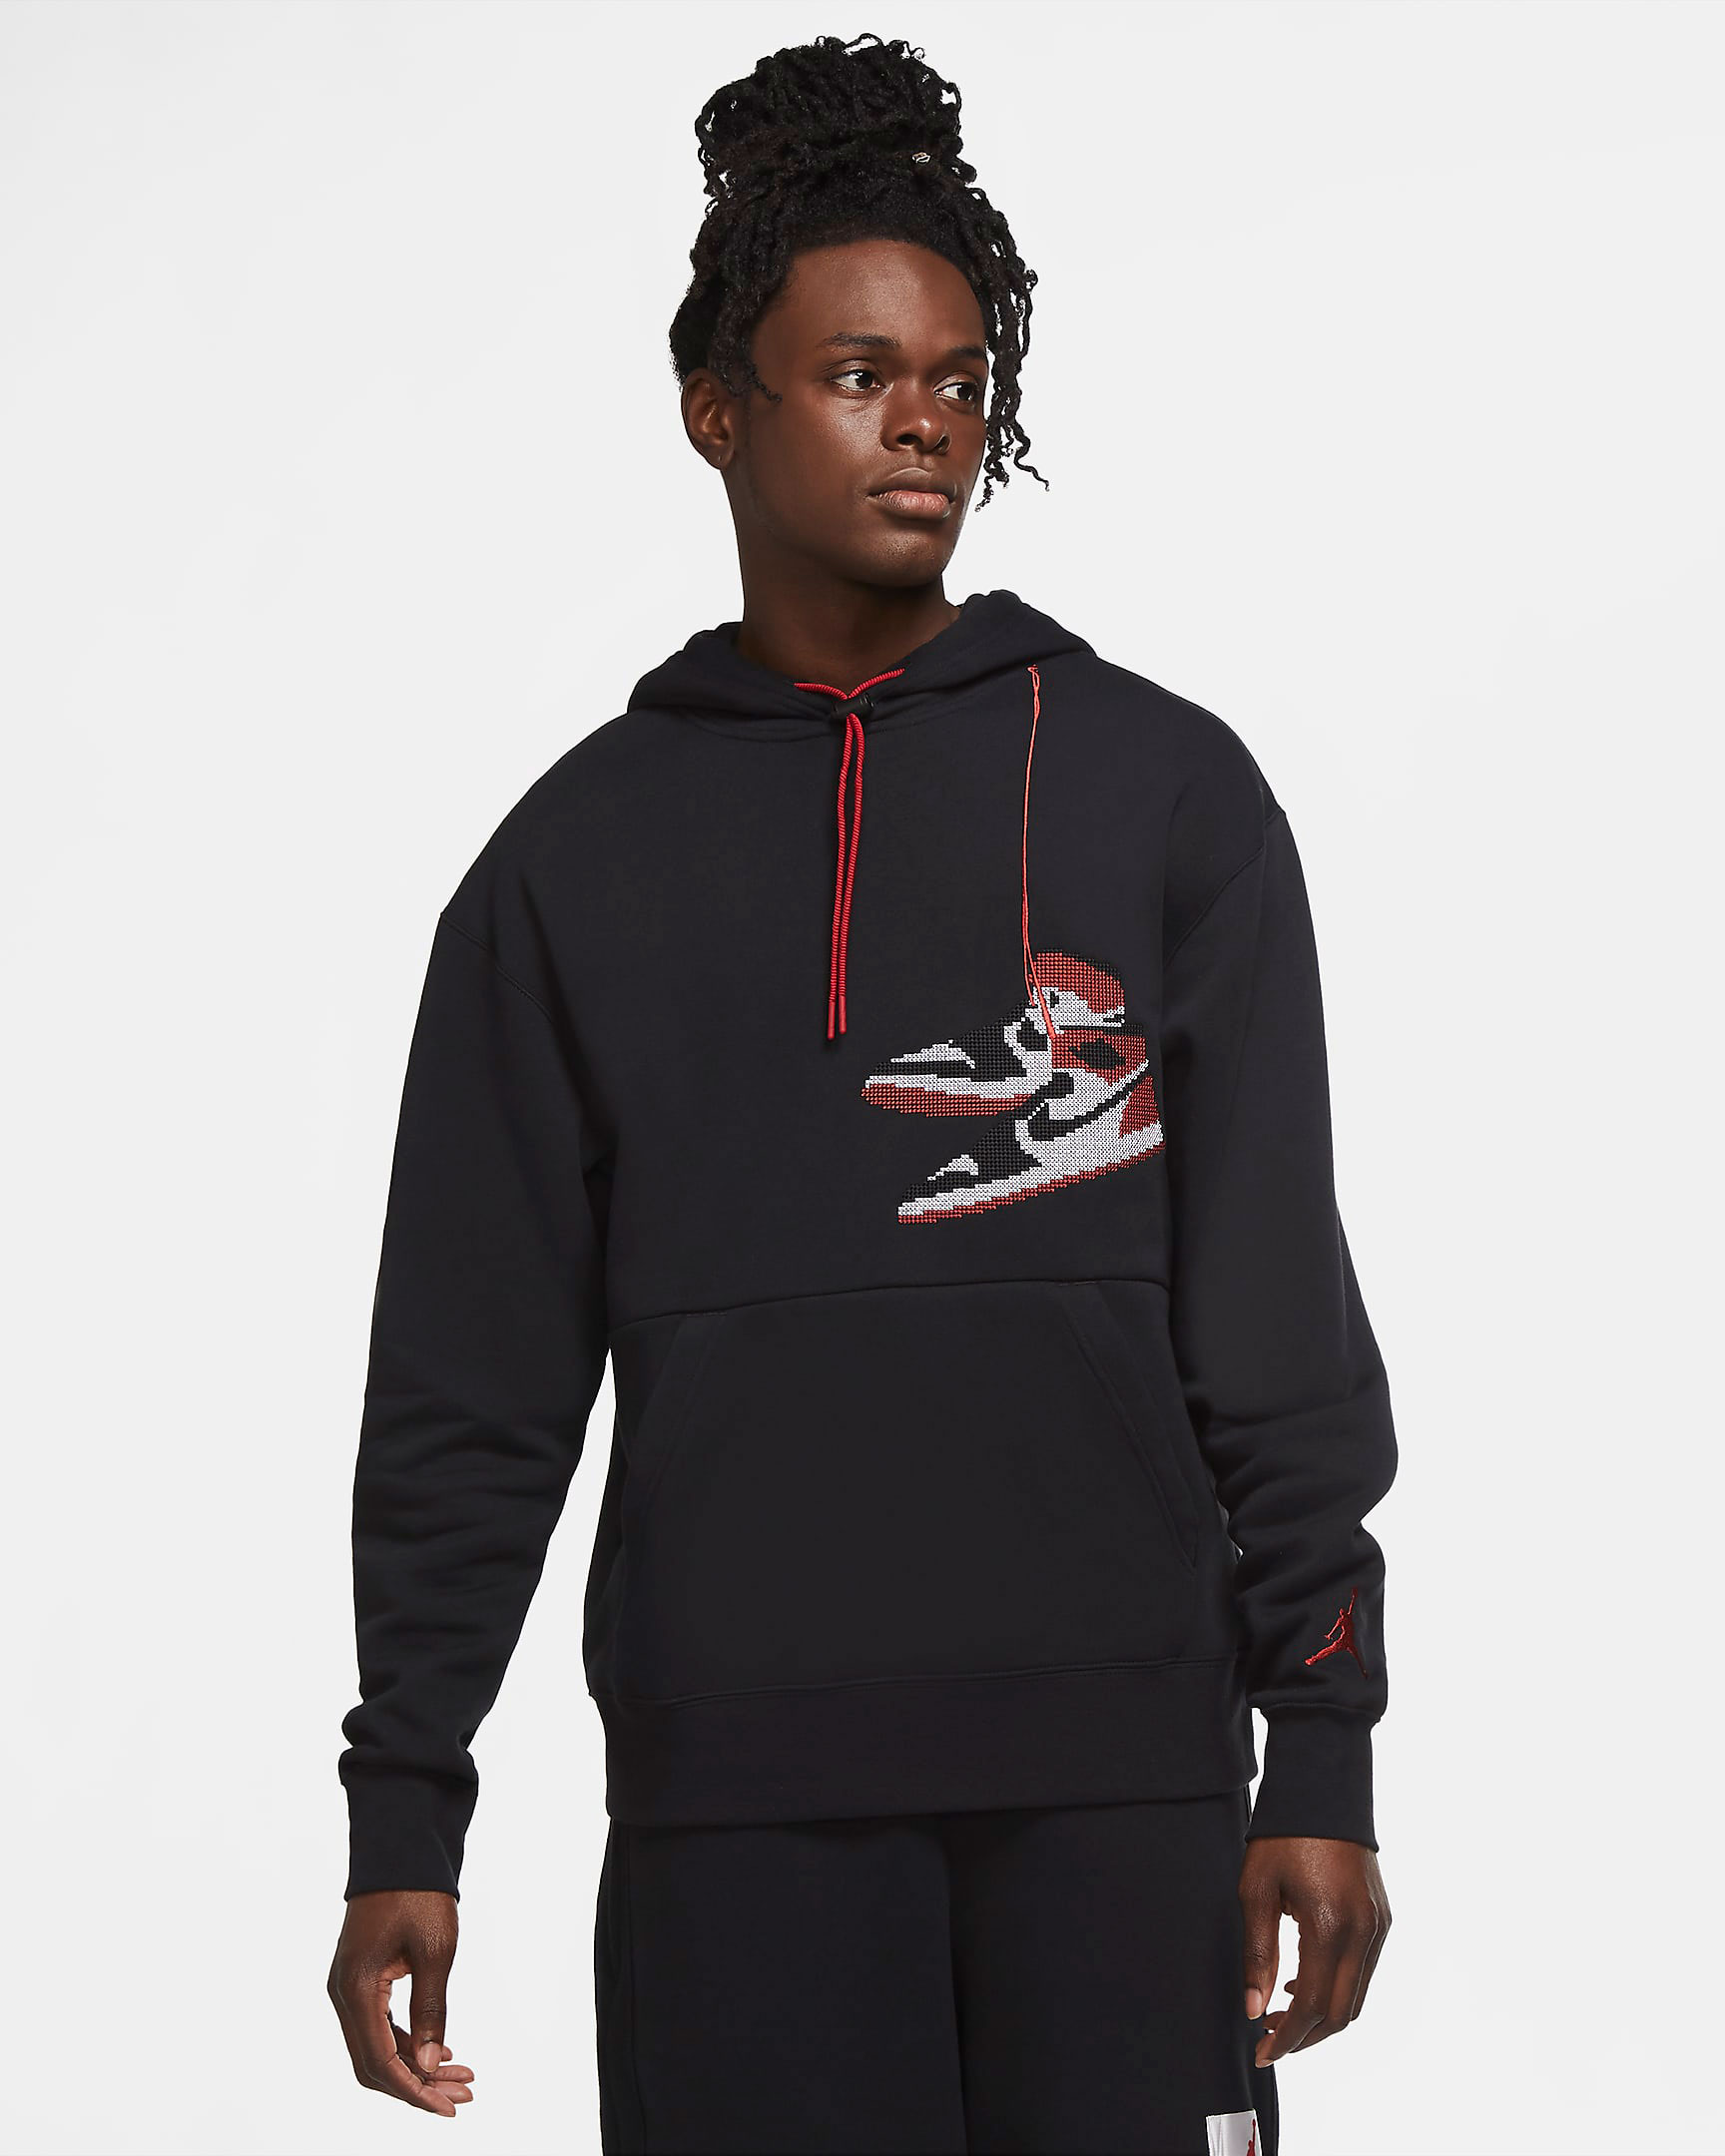 jordan-aj1-knit-stocking-holiday-hoodie-black-1